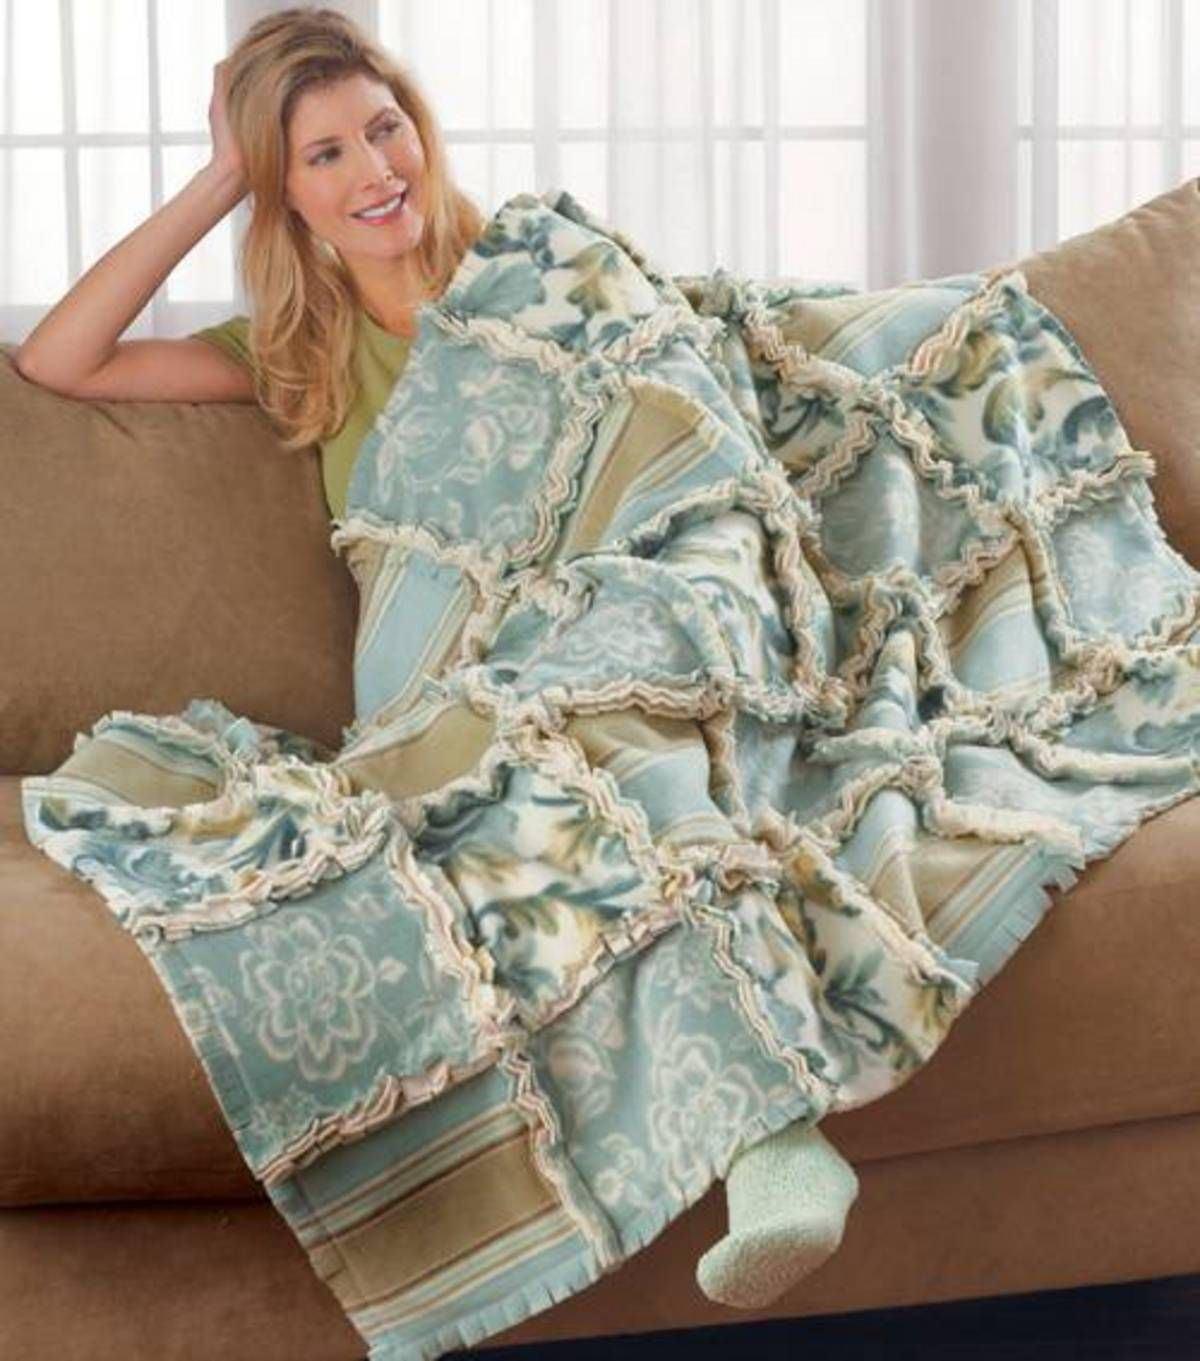 Fleece Ragged Quilt & Sewing Projects at Joann.com | I want to try ...